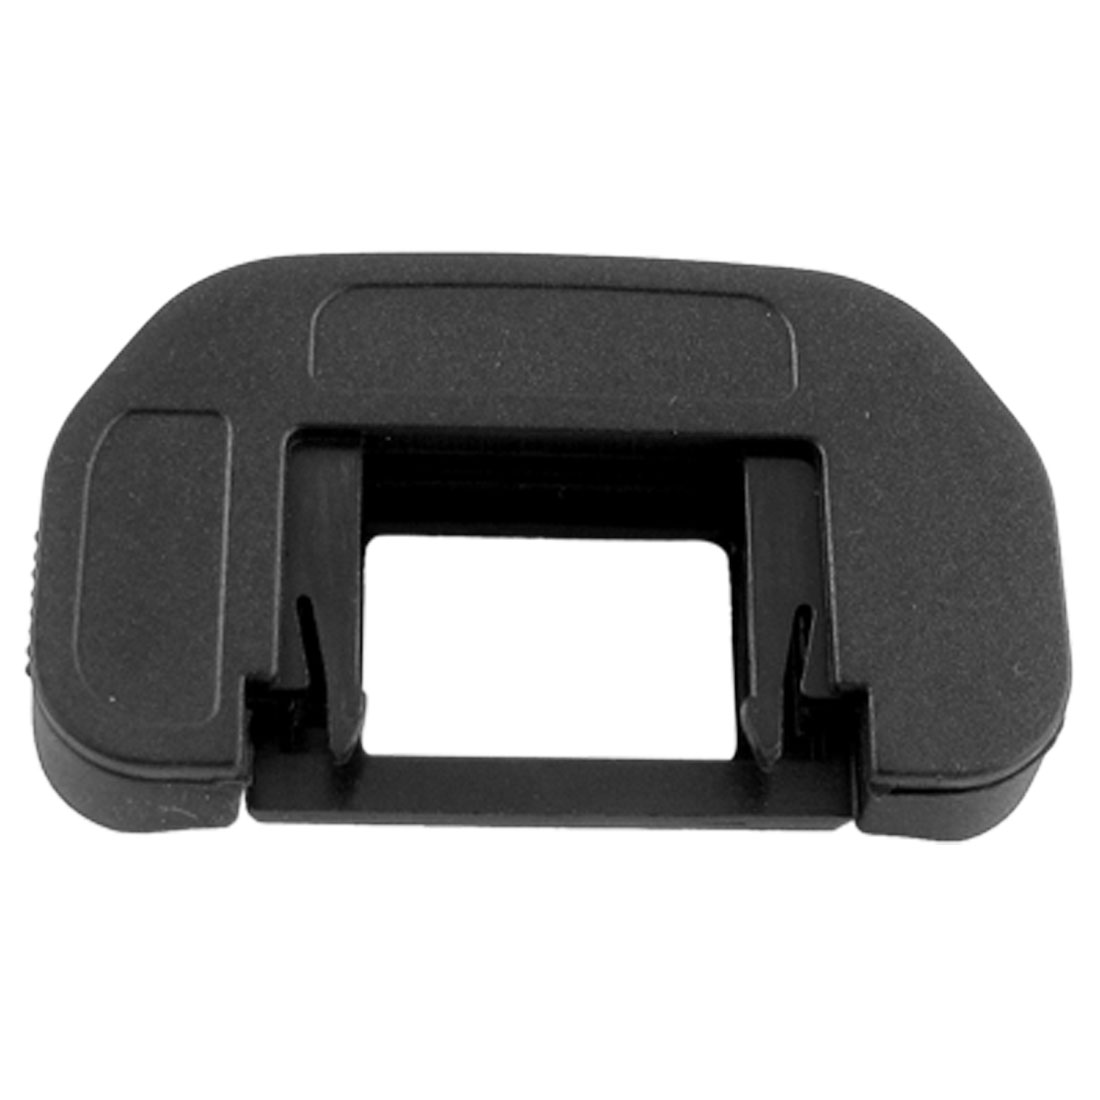 Black Eyecup Camera Eye Cup Cover Parts